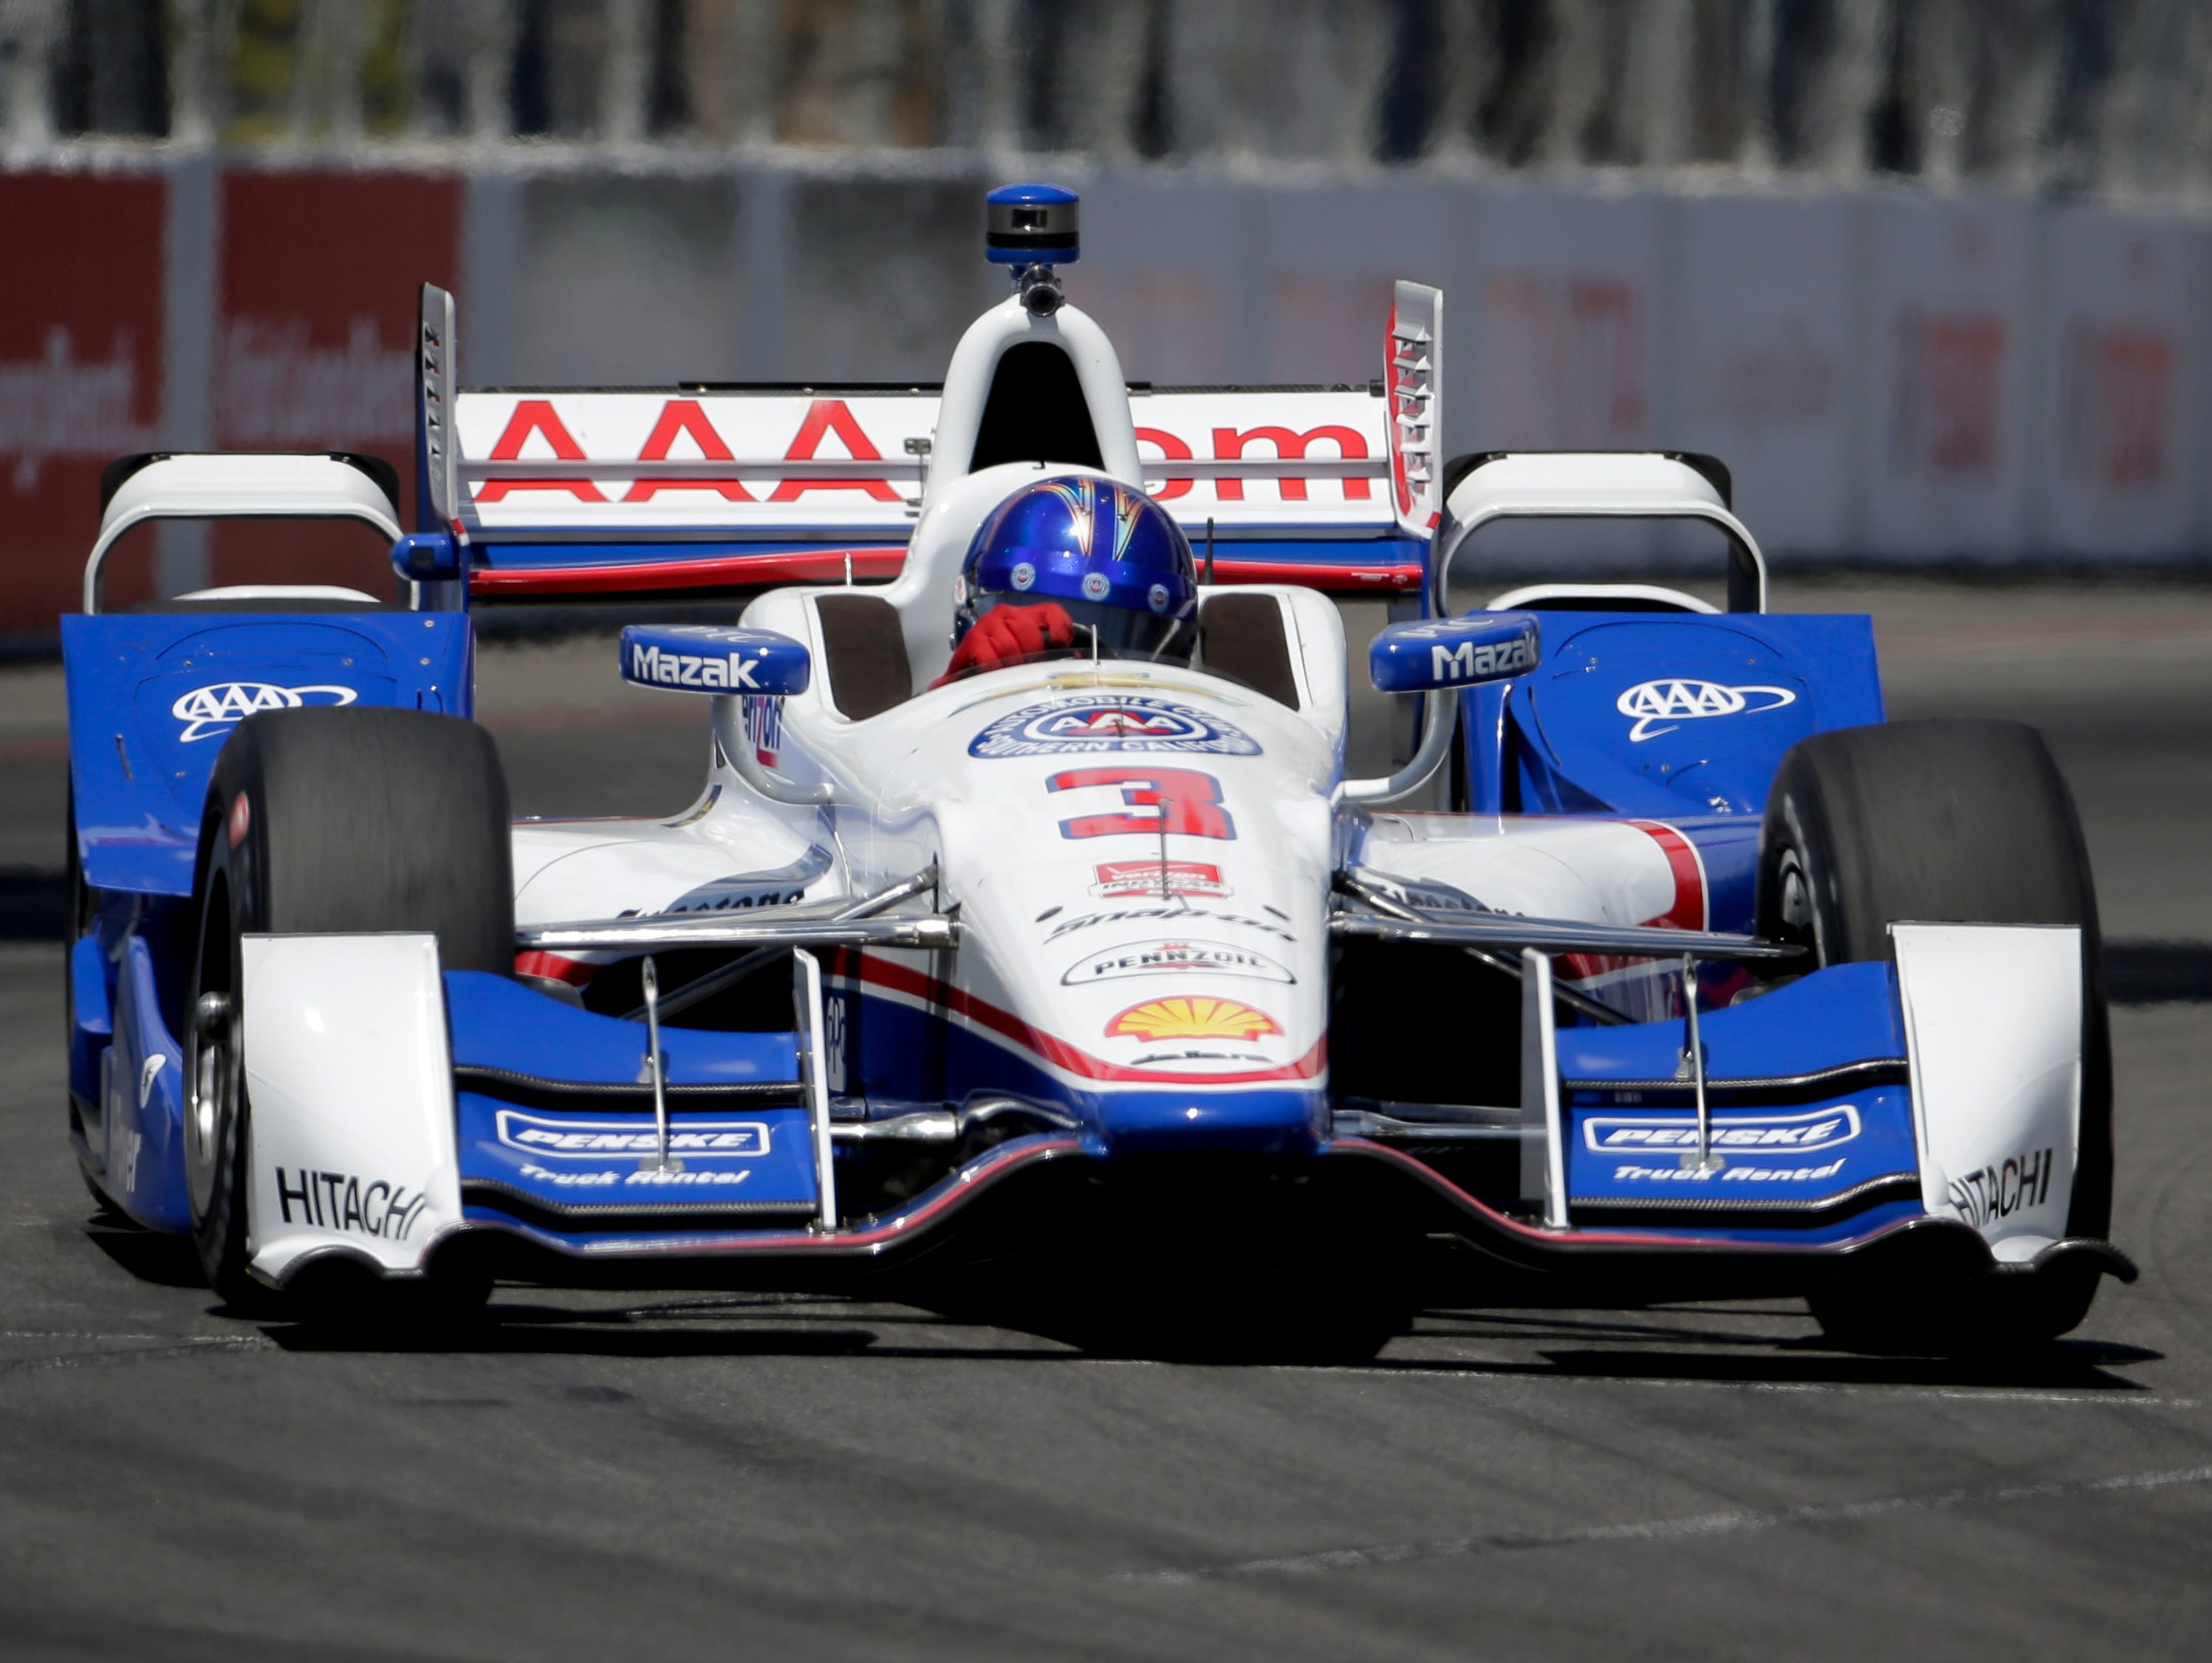 Helio Castroneves drives during a practice run for the IndyCar race at the Toyota Grand Prix of Long Beach on Friday, April 17, 2015 in Long Beach, Calif.